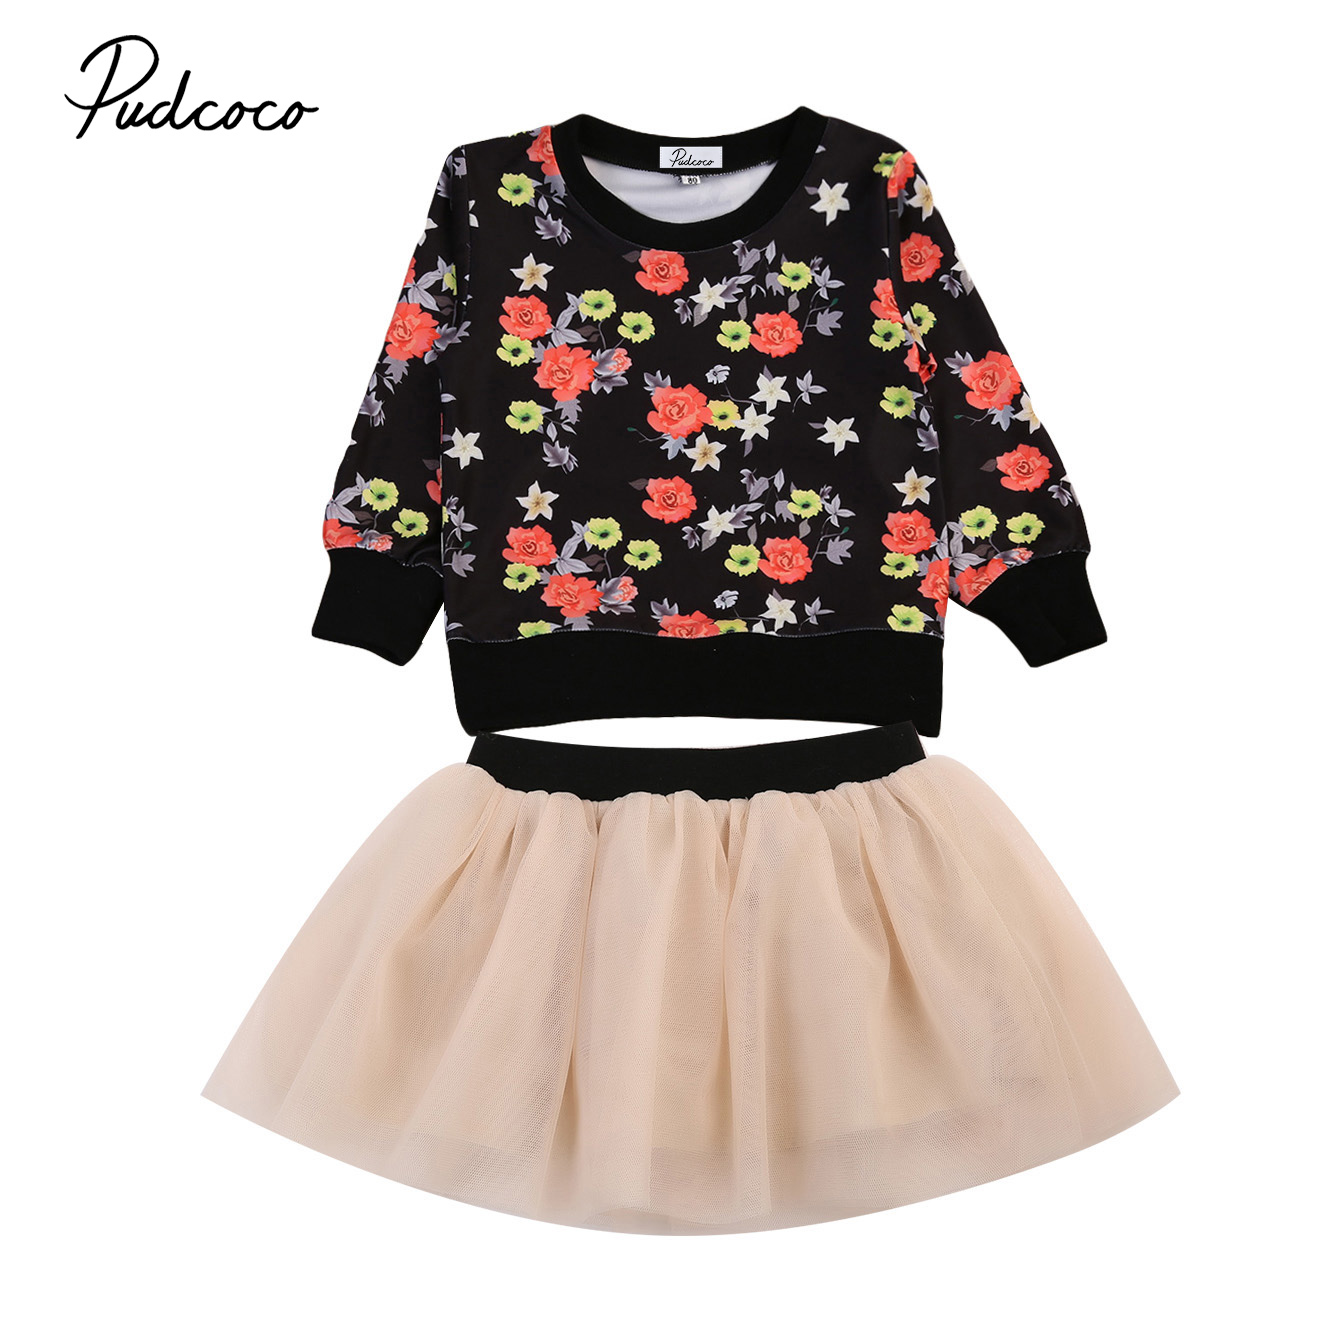 2017 New Brand Toddler Infant Child 2pcs Kids Baby Girl Floral Sweater Tops Long Sleeve T-Shirt  Skirt Tulle Set Lovely Clothes 2pcs children outfit clothes kids baby girl off shoulder cotton ruffled sleeve tops striped t shirt blue denim jeans sunsuit set